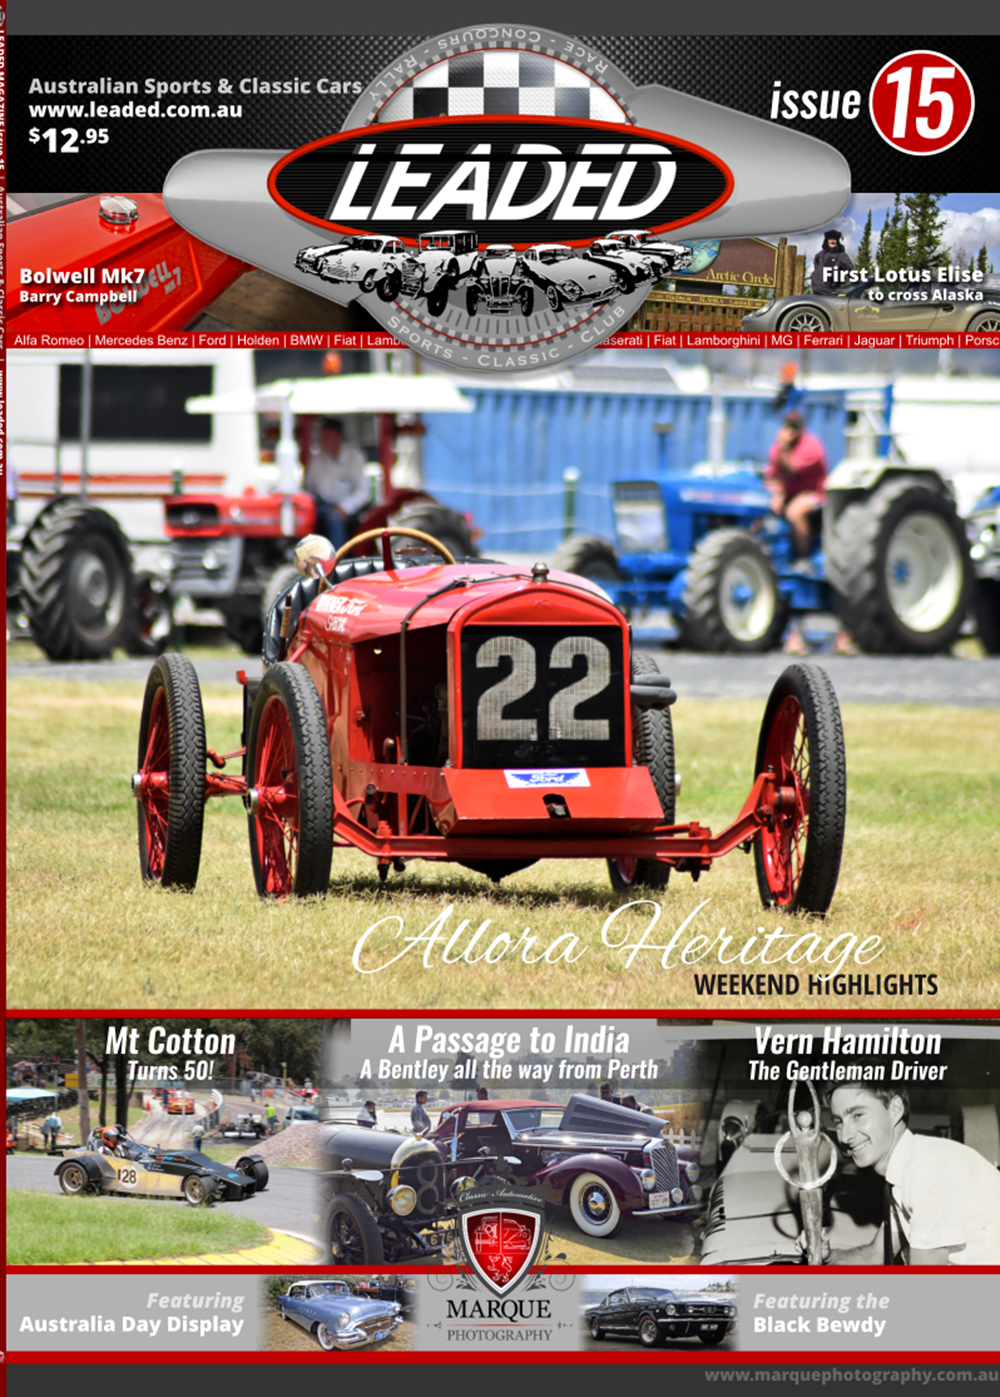 ABOUT LEADED  Leaded (as in the old fuel) is a high quality quarterly publication dedicated to Australian Car Clubs, Australian Car Club Events, Australian Car Collectors and Enthusiasts. It is obtained through Car Clubs, Automotive Events,  the  On-line Leaded Store . Leaded is proudly an Independent Australian owned, printed publication by Mark Buchanan of Marque Photography.